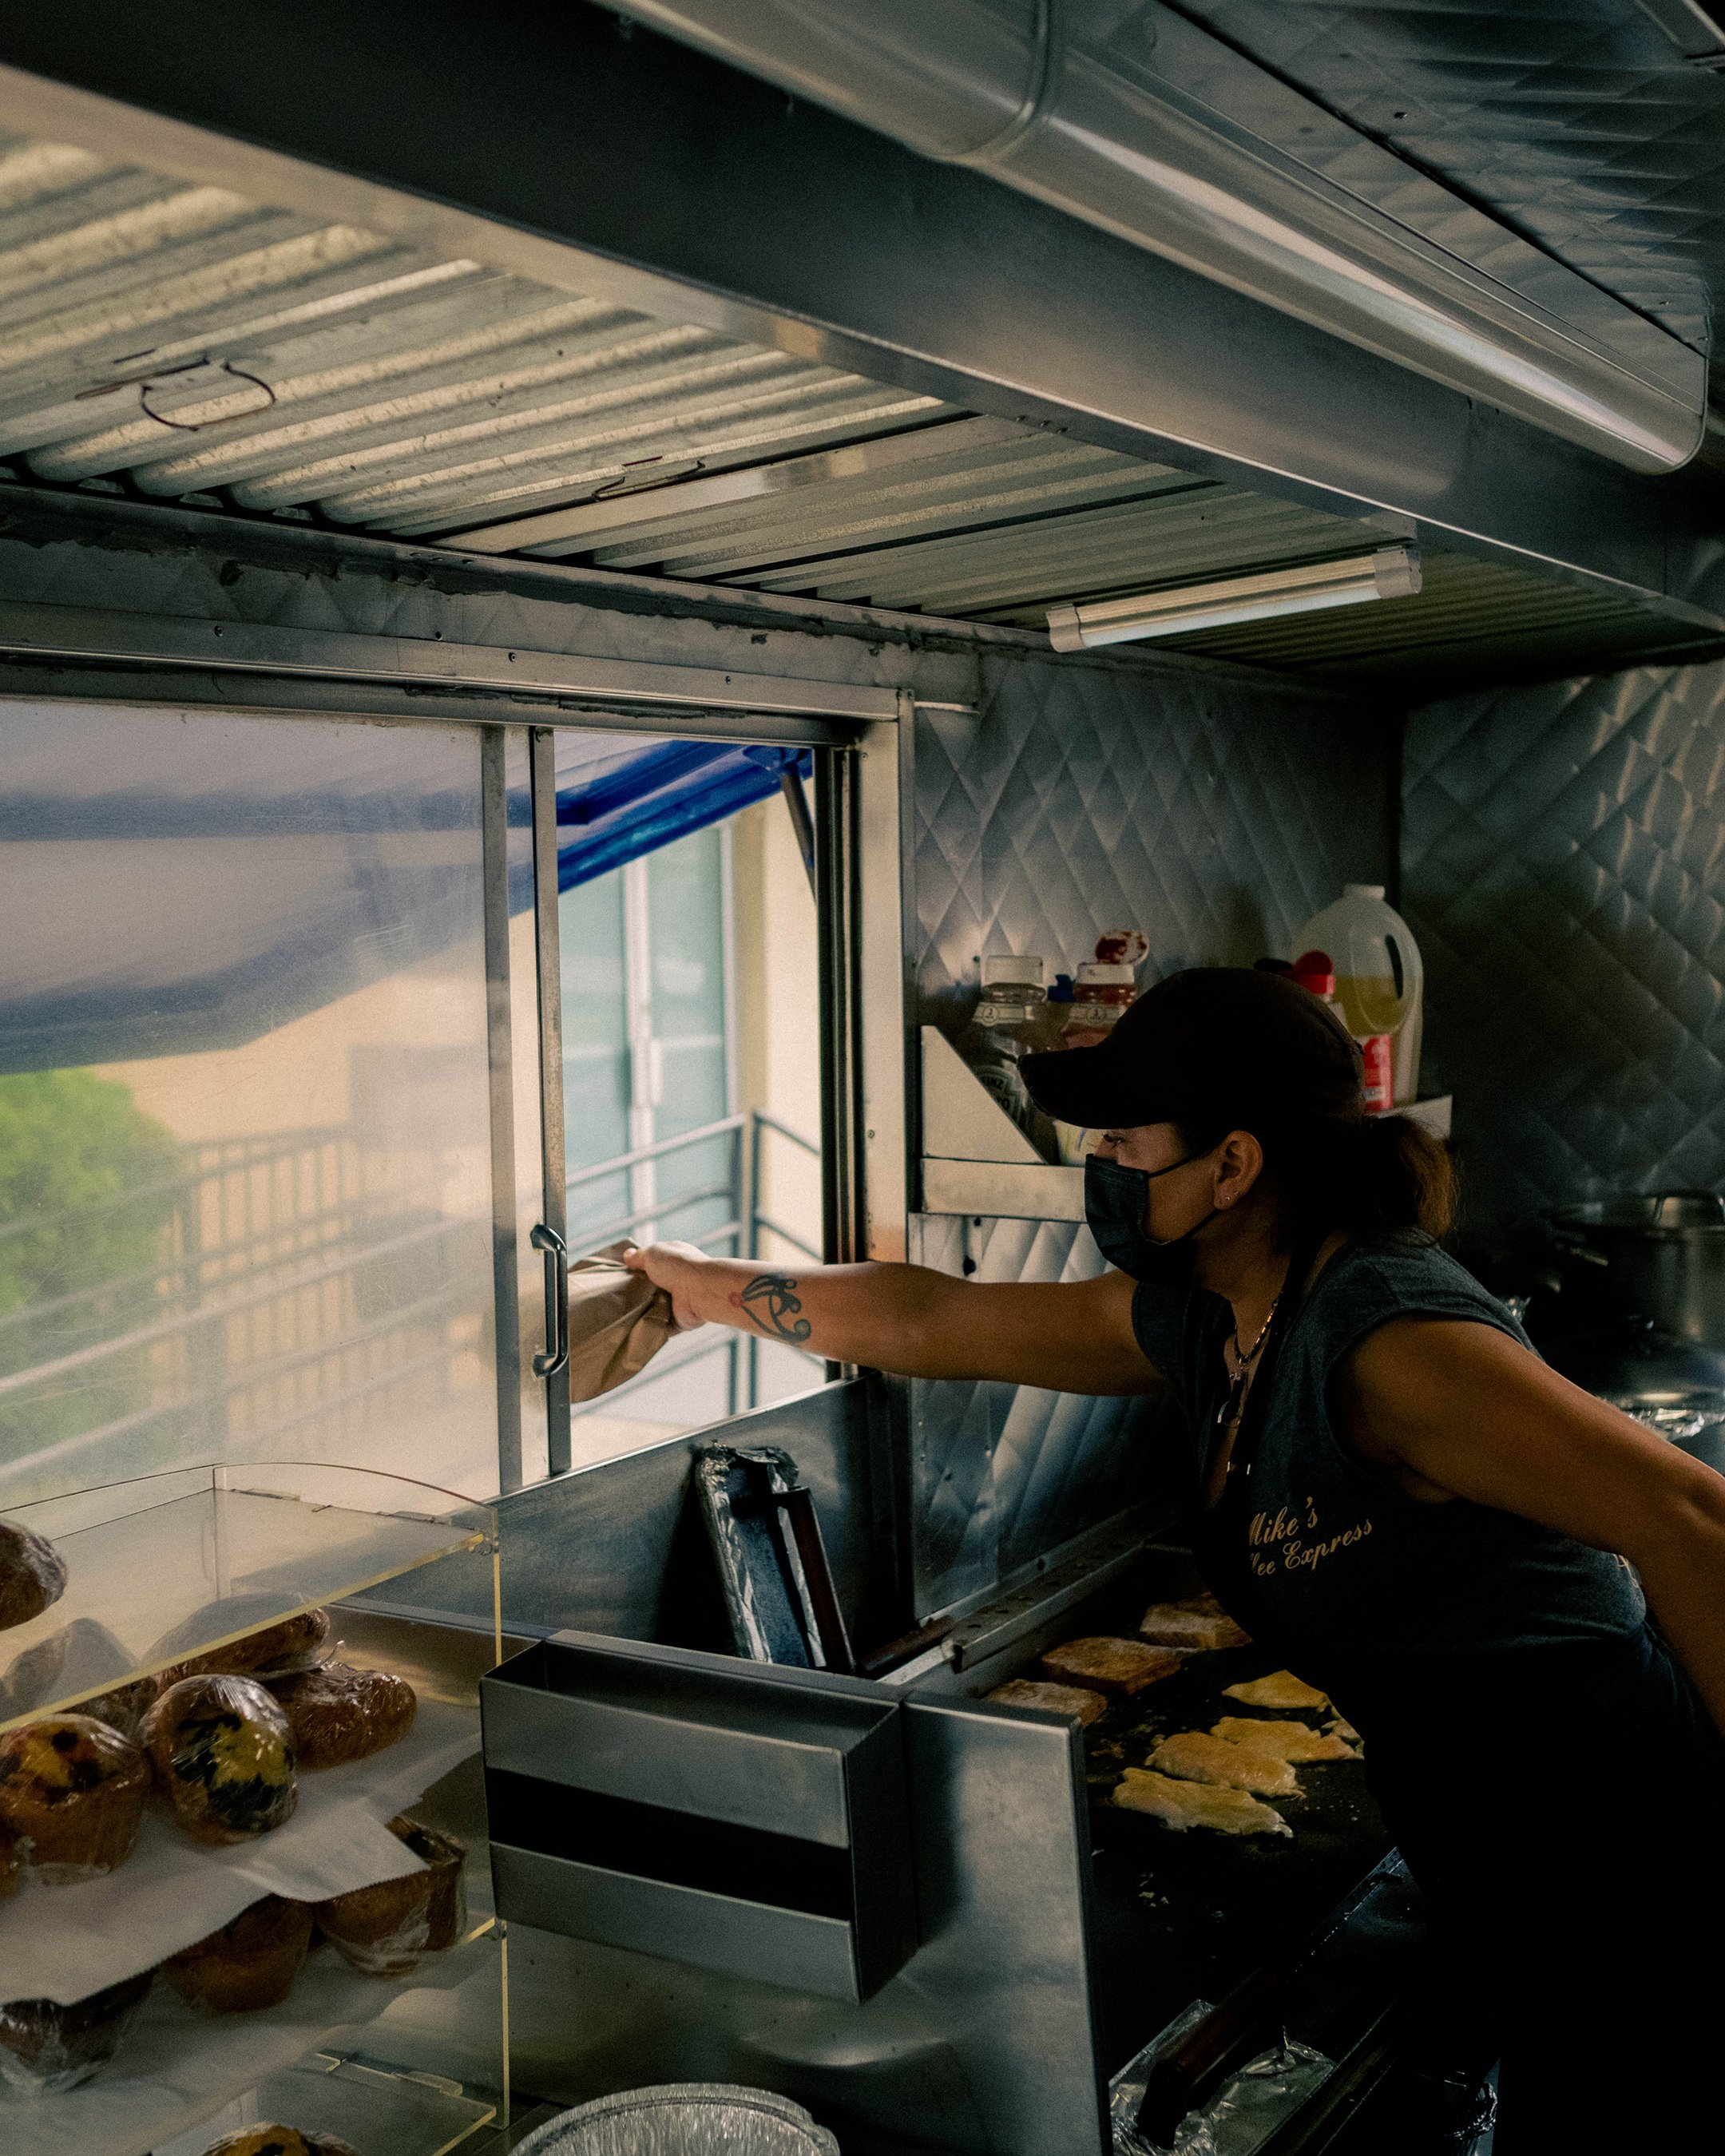 Maggie Morales runs Mike's Express